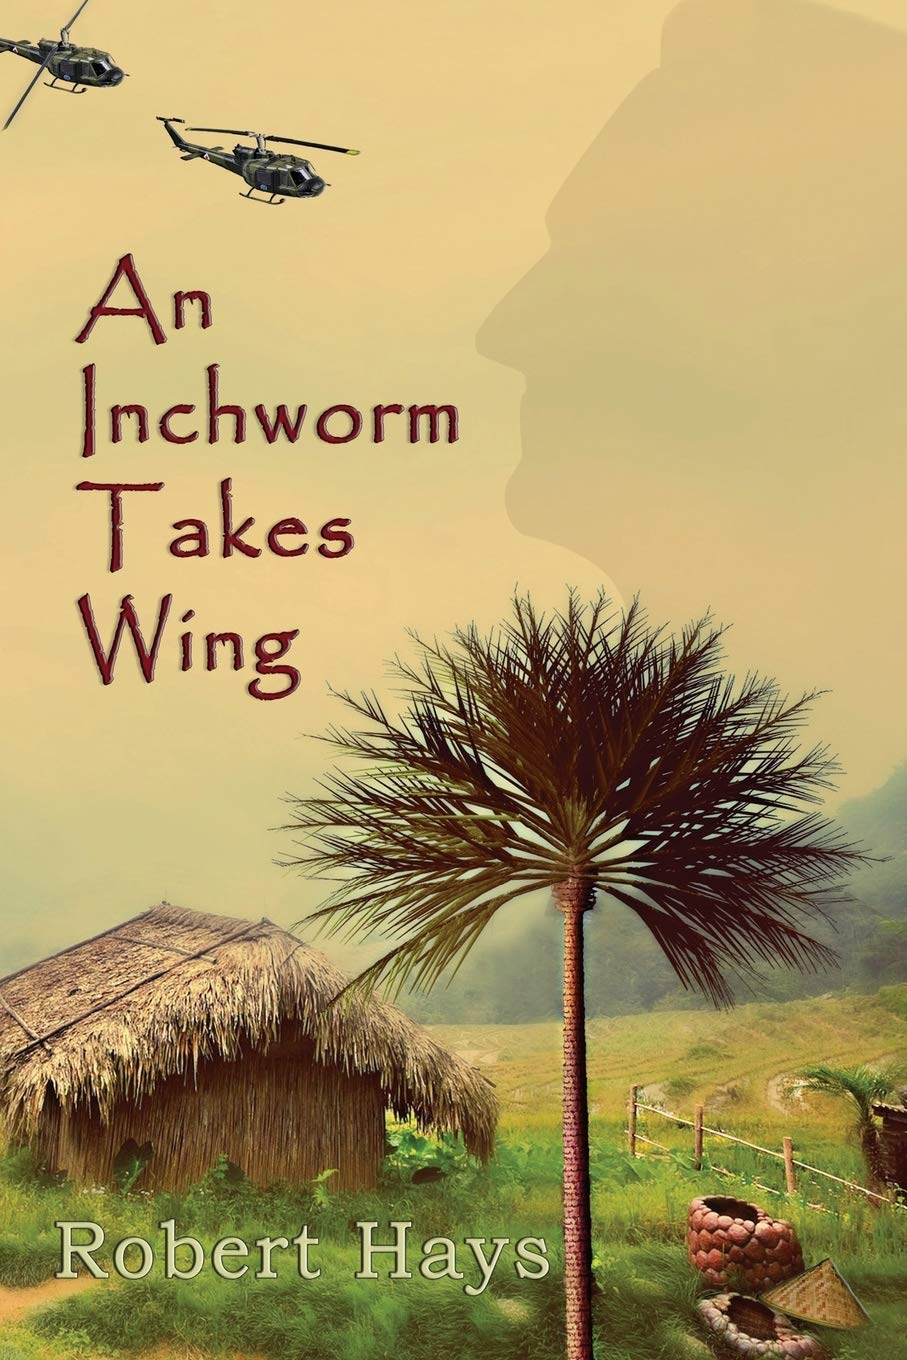 An Inchworm Takes Wing